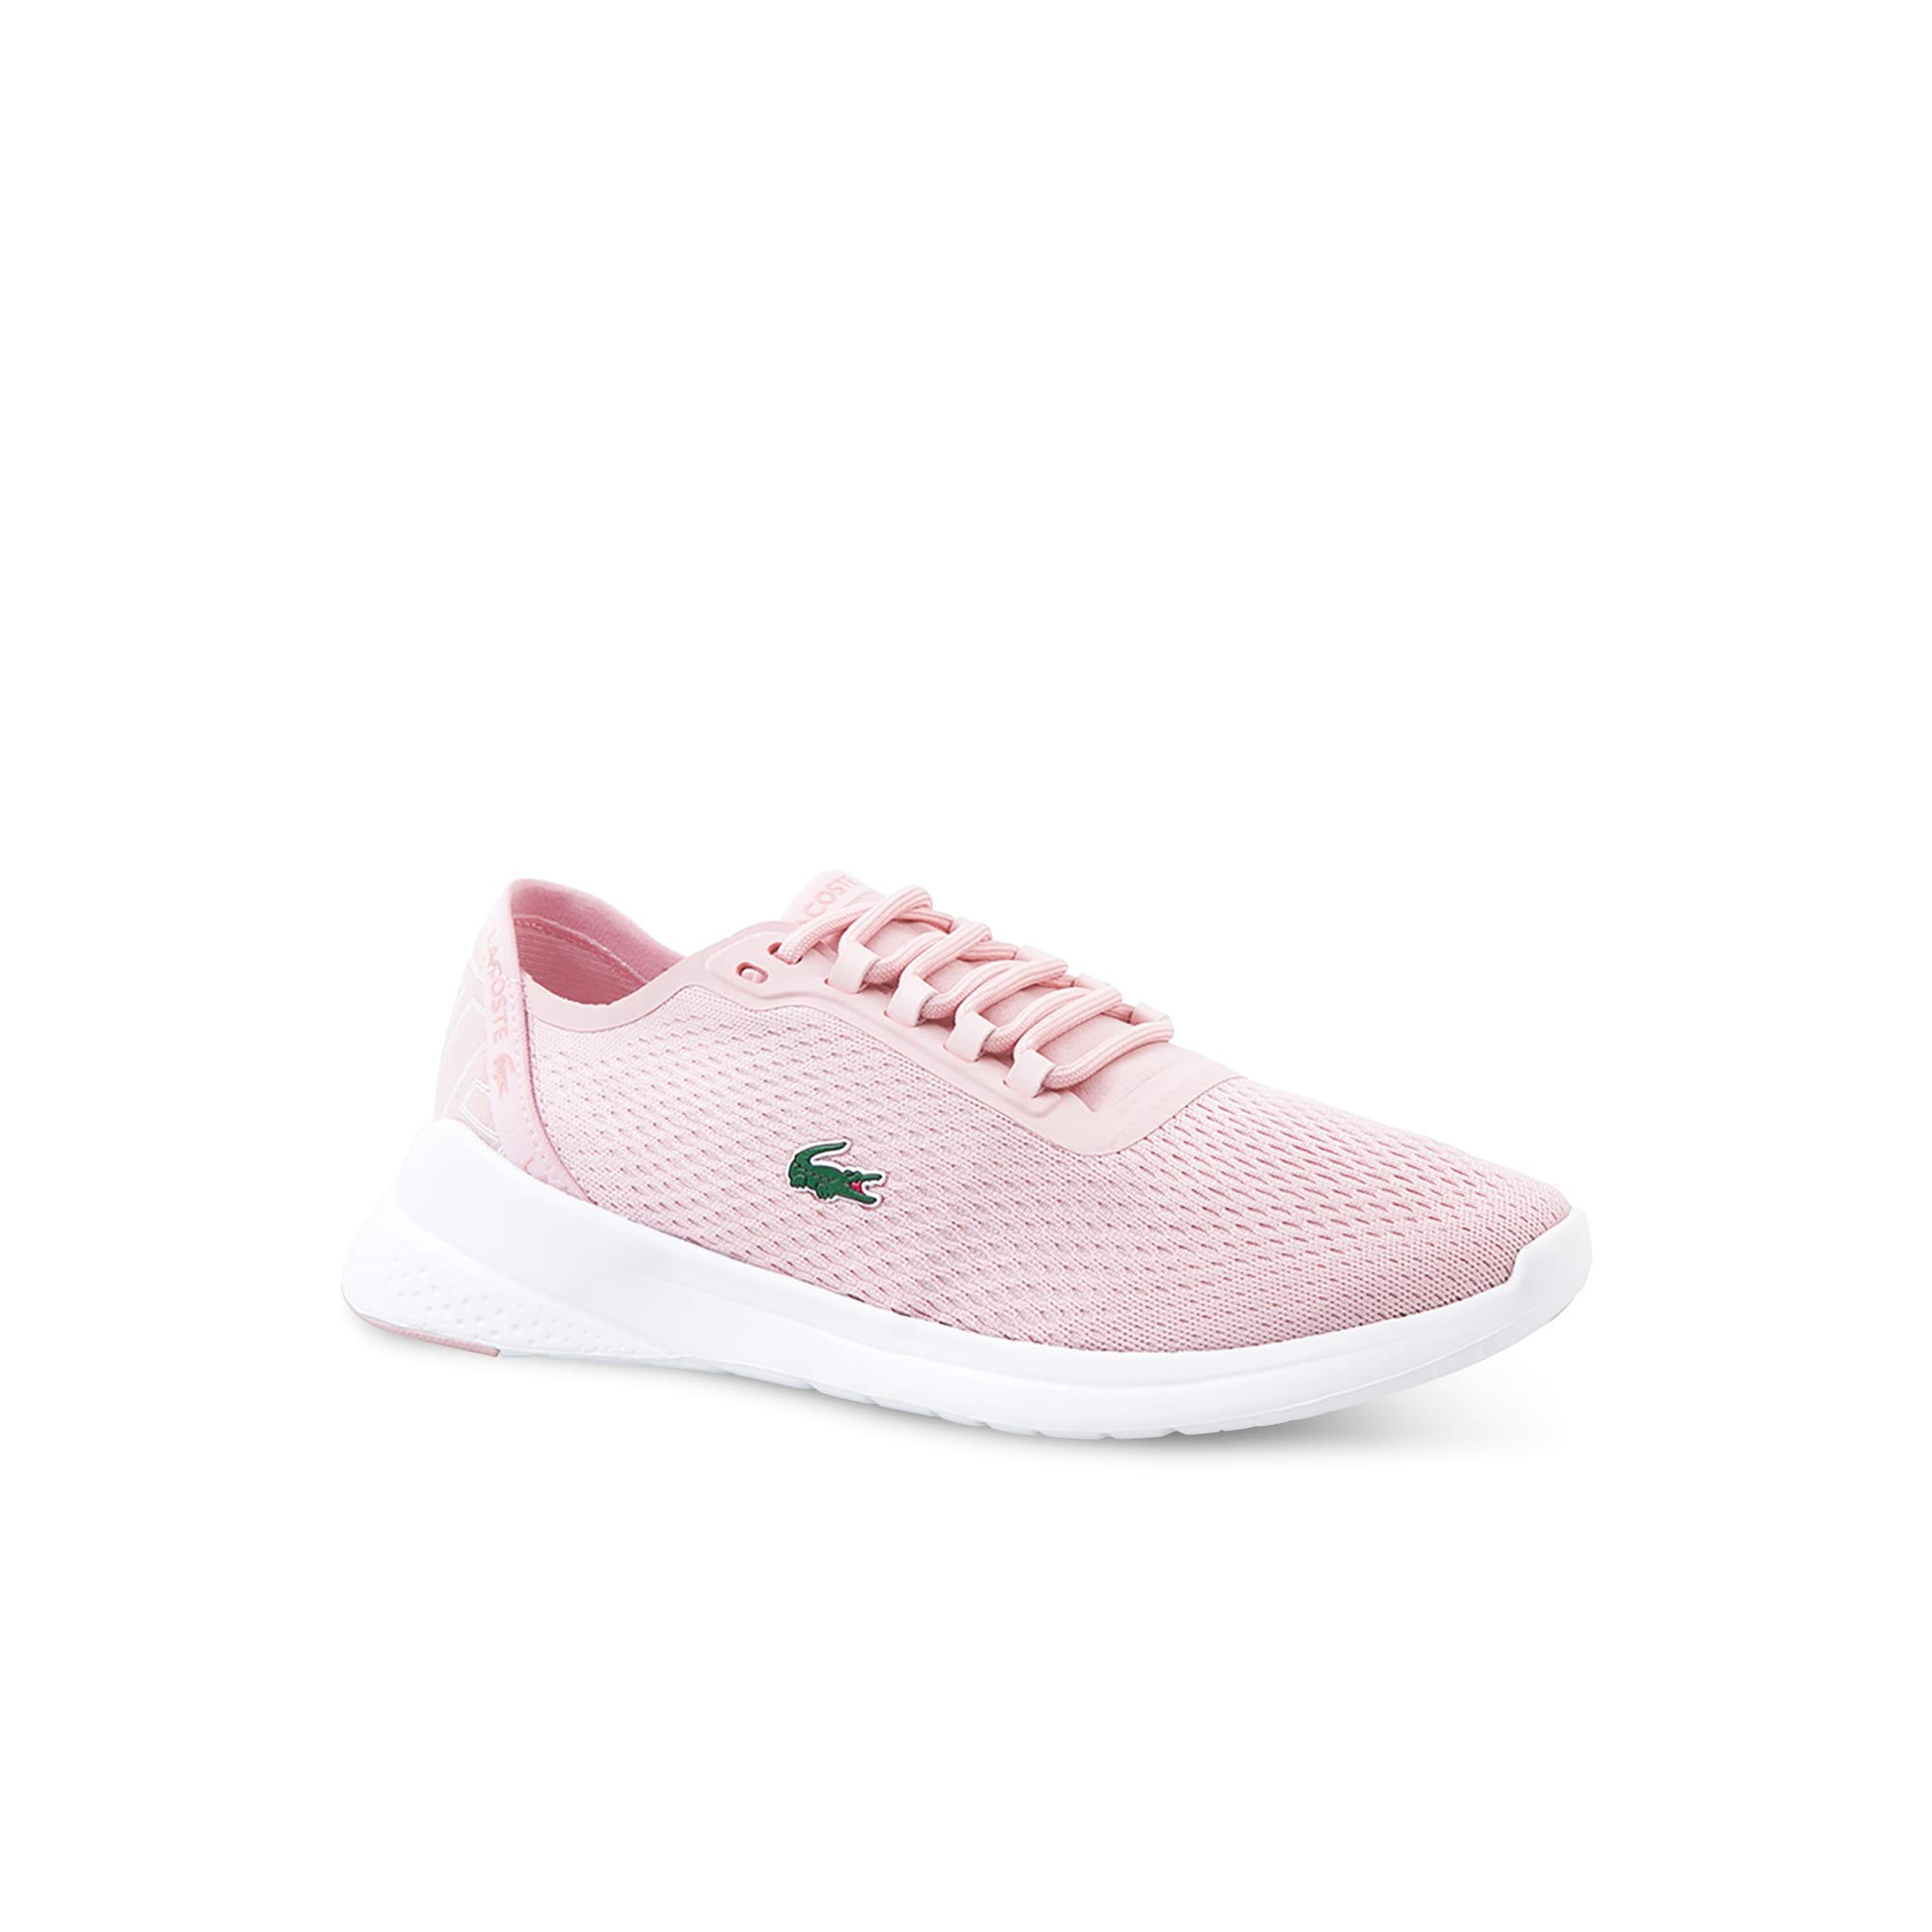 Damen-Sneakers LT FIT aus Textil Mesh